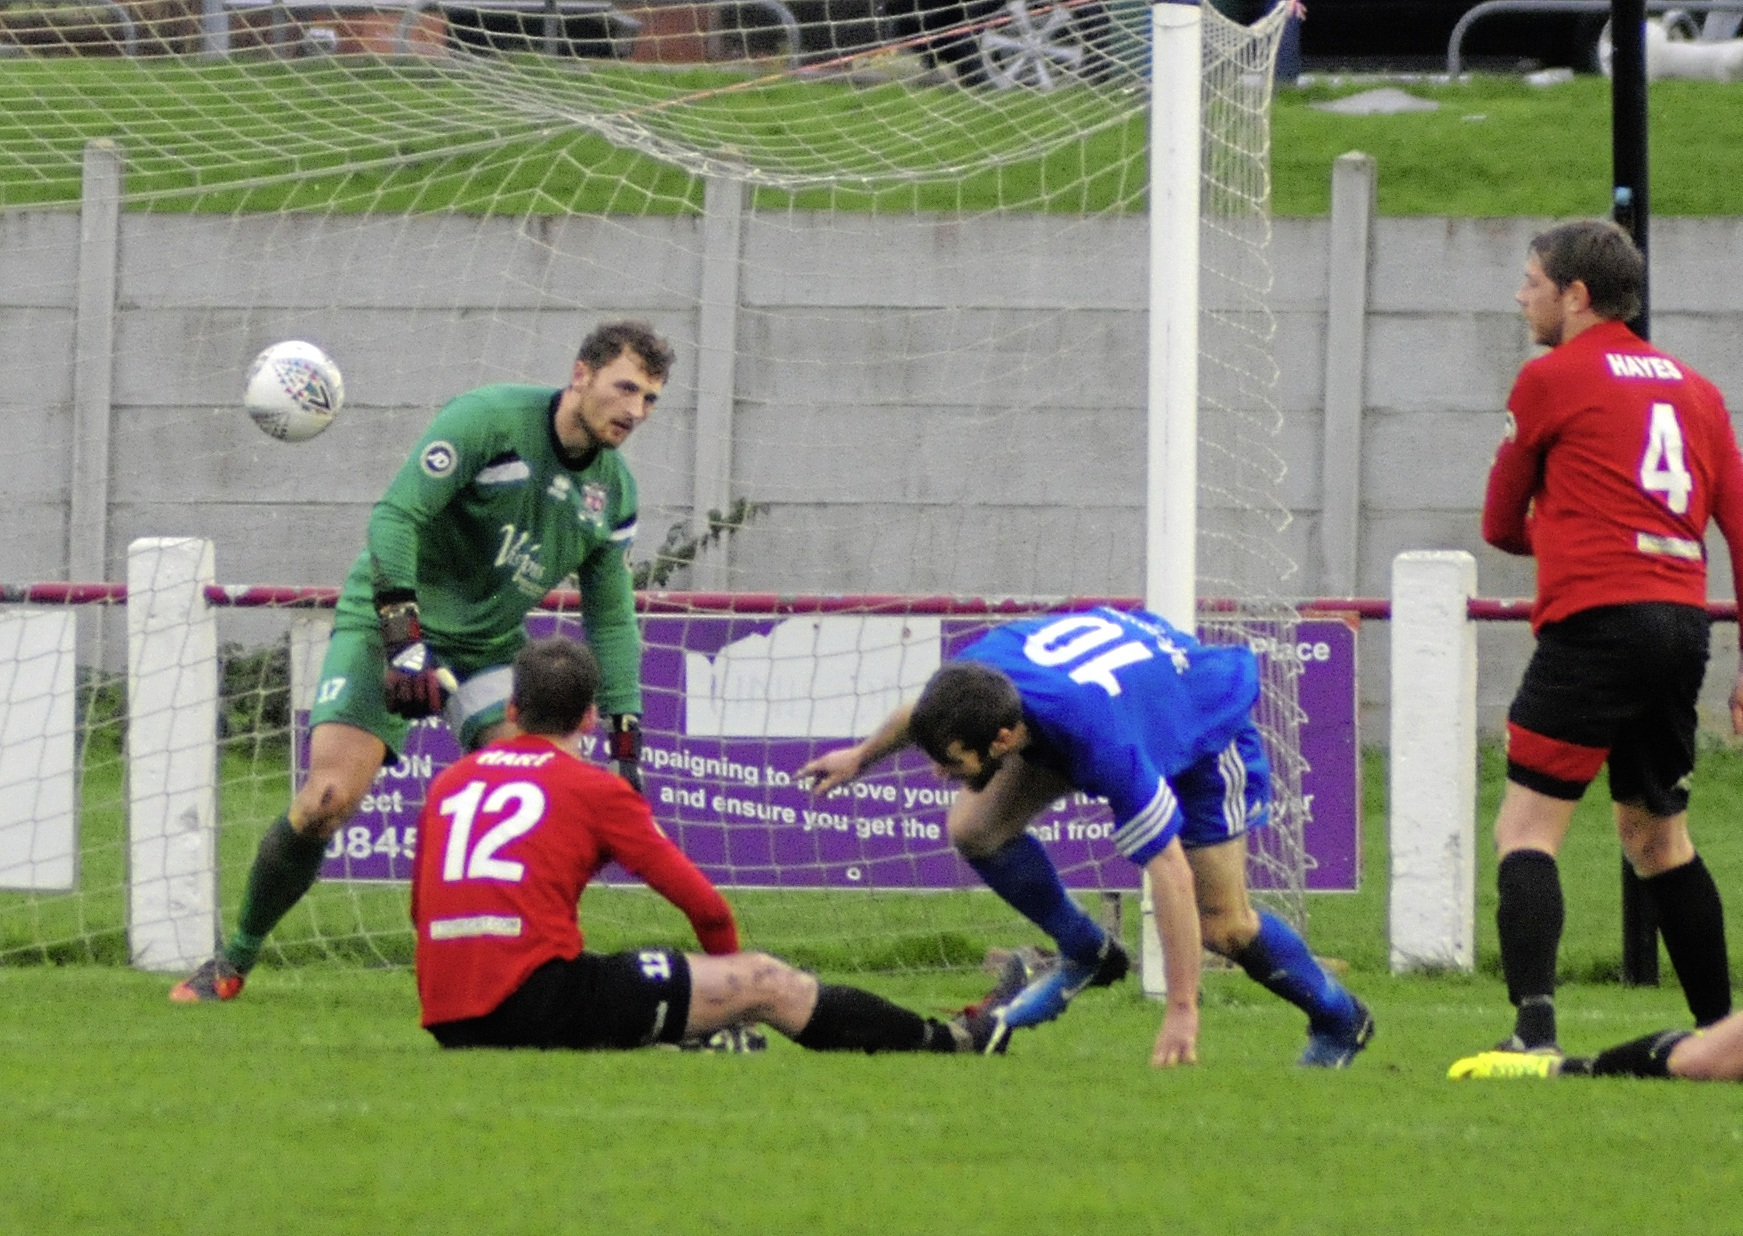 Gwion Owen on target for Ruthin Town during the brilliant 3-0 win at Prestatyn Town in the last round